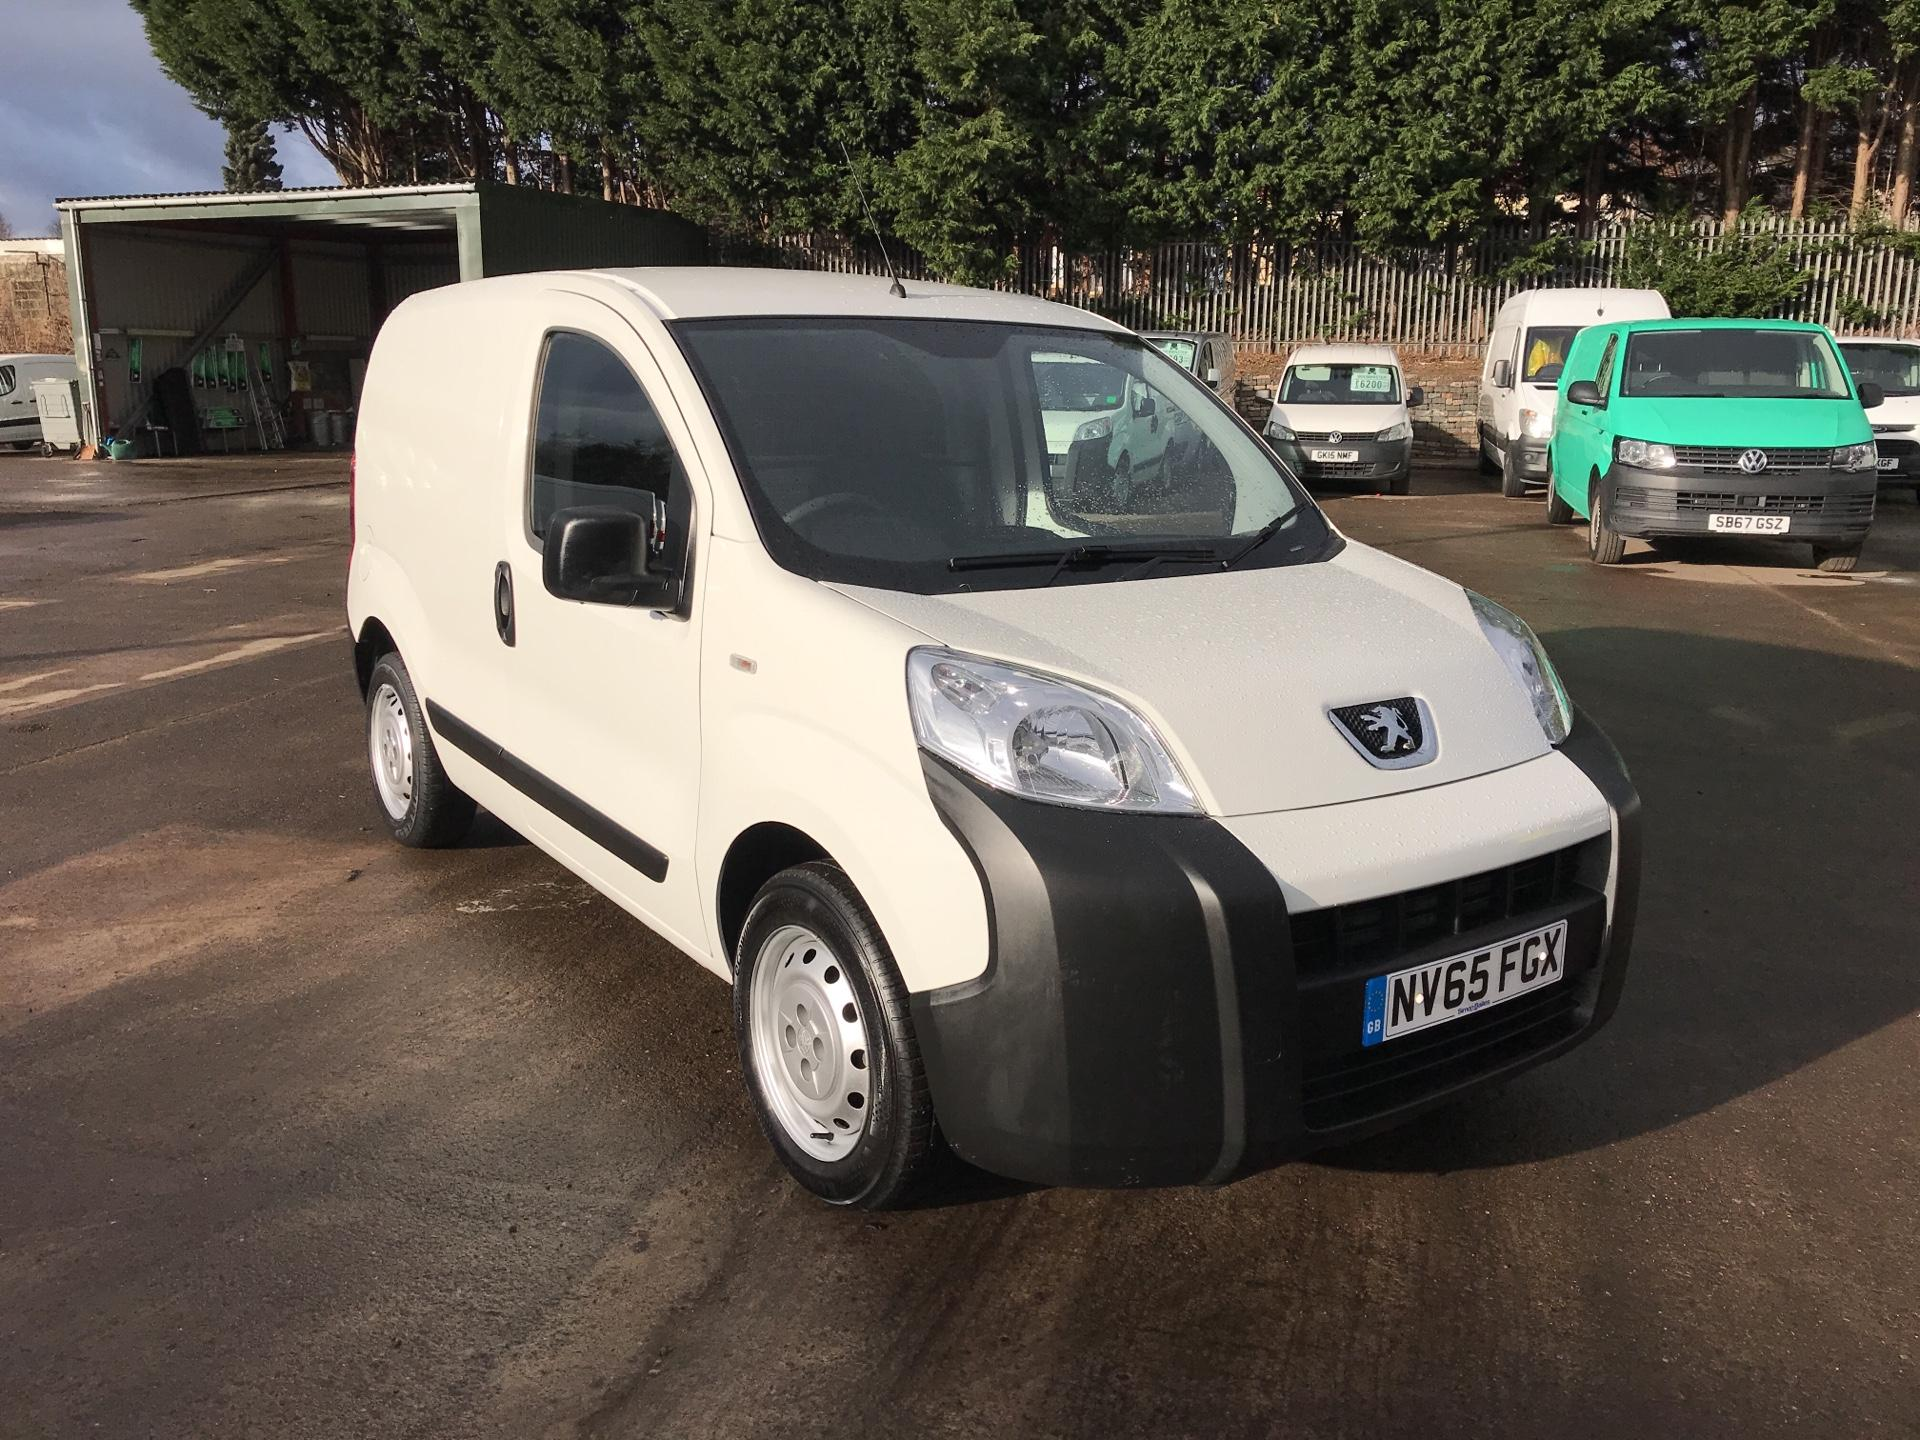 2015 Peugeot Bipper 1.3 HDI 75PS S PLUS PACK NON S/S EURO 5 (NV65FGX)